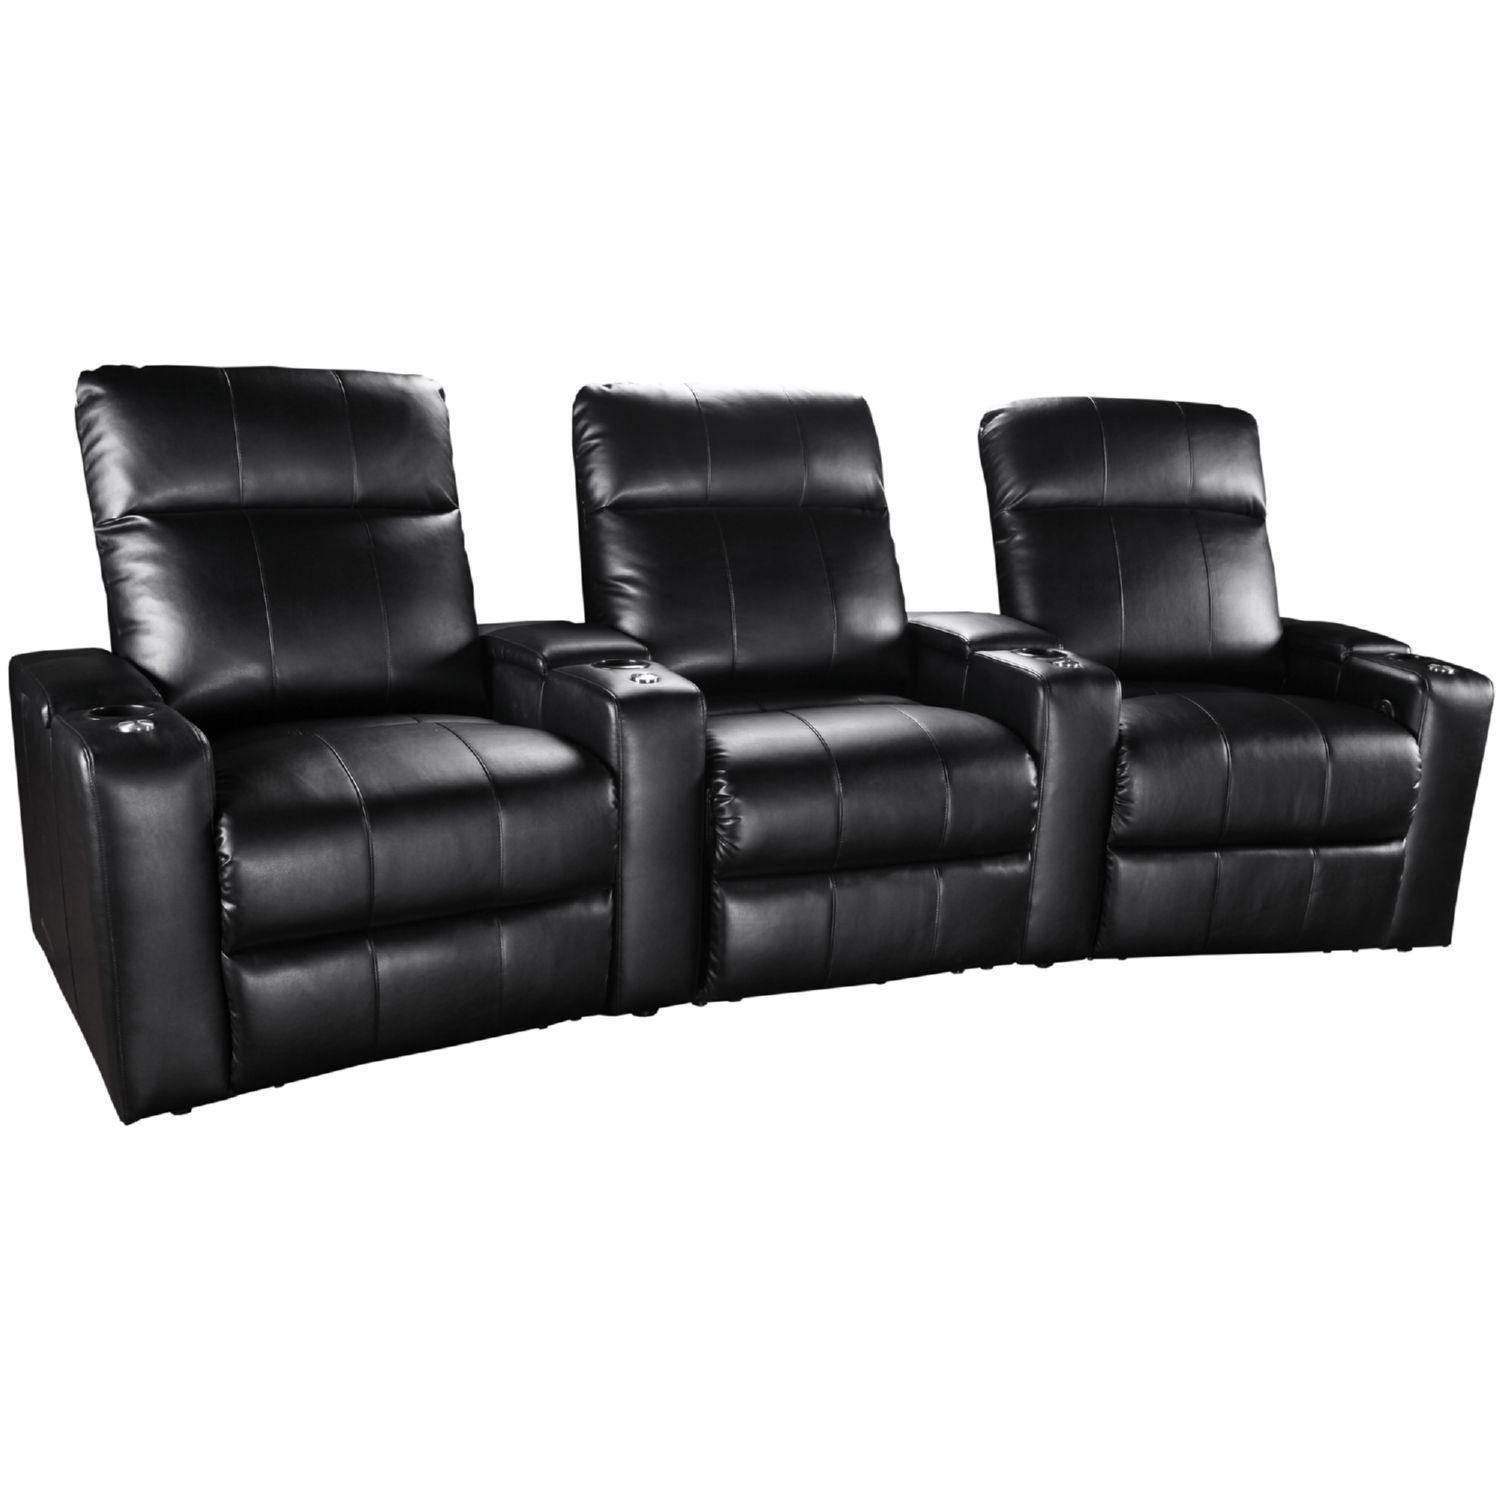 Theater Seating Group Curved 3 Seats